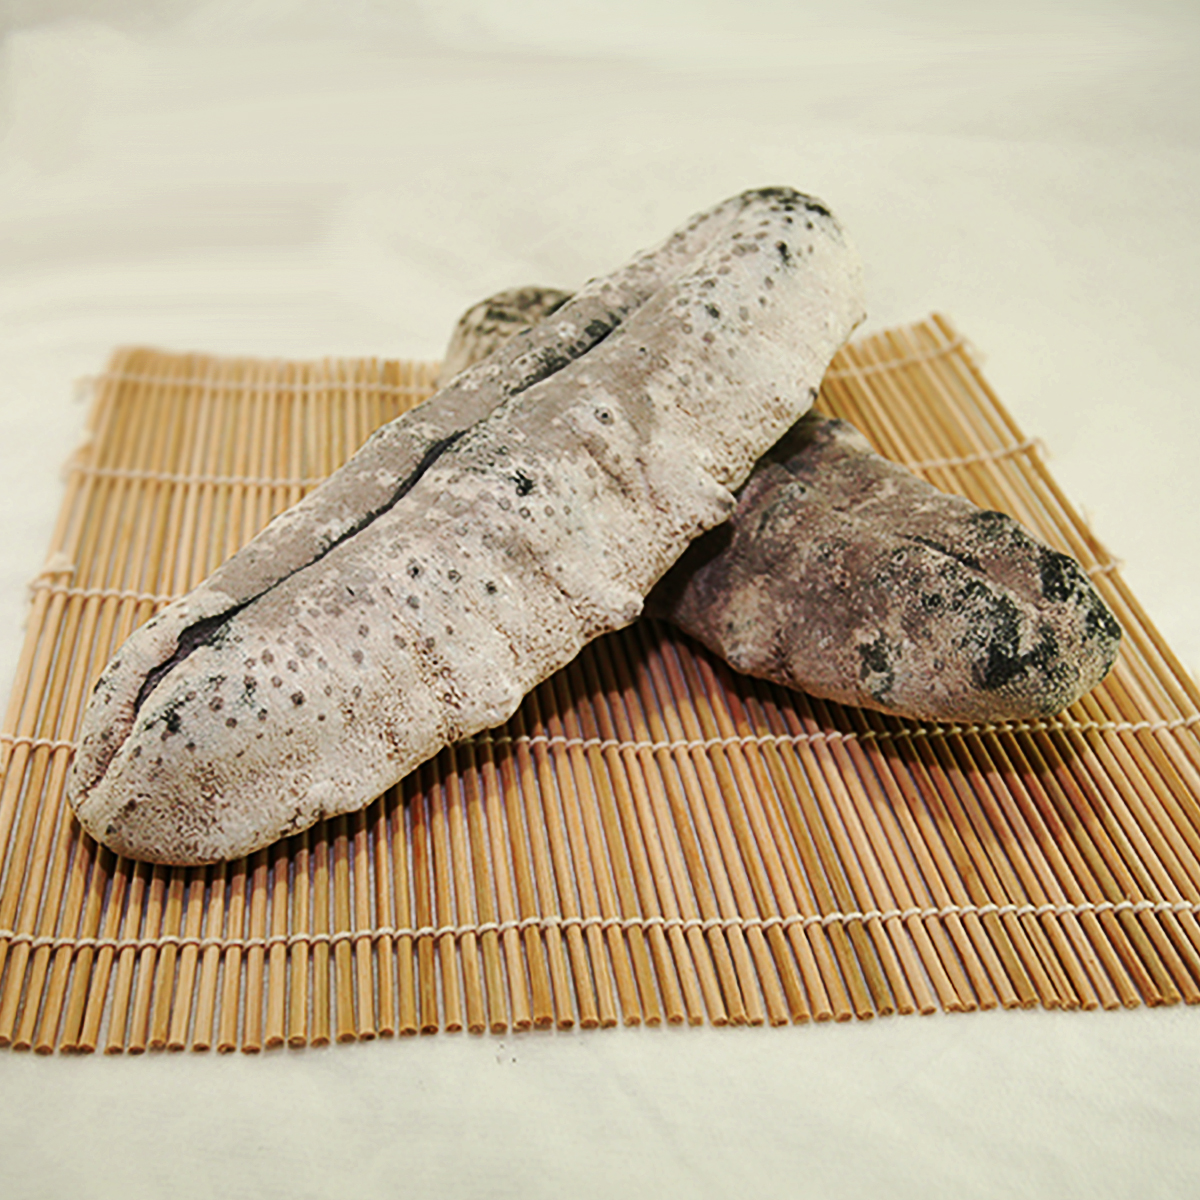 Fiji White Sea Cucumber(2-3 p/LB)